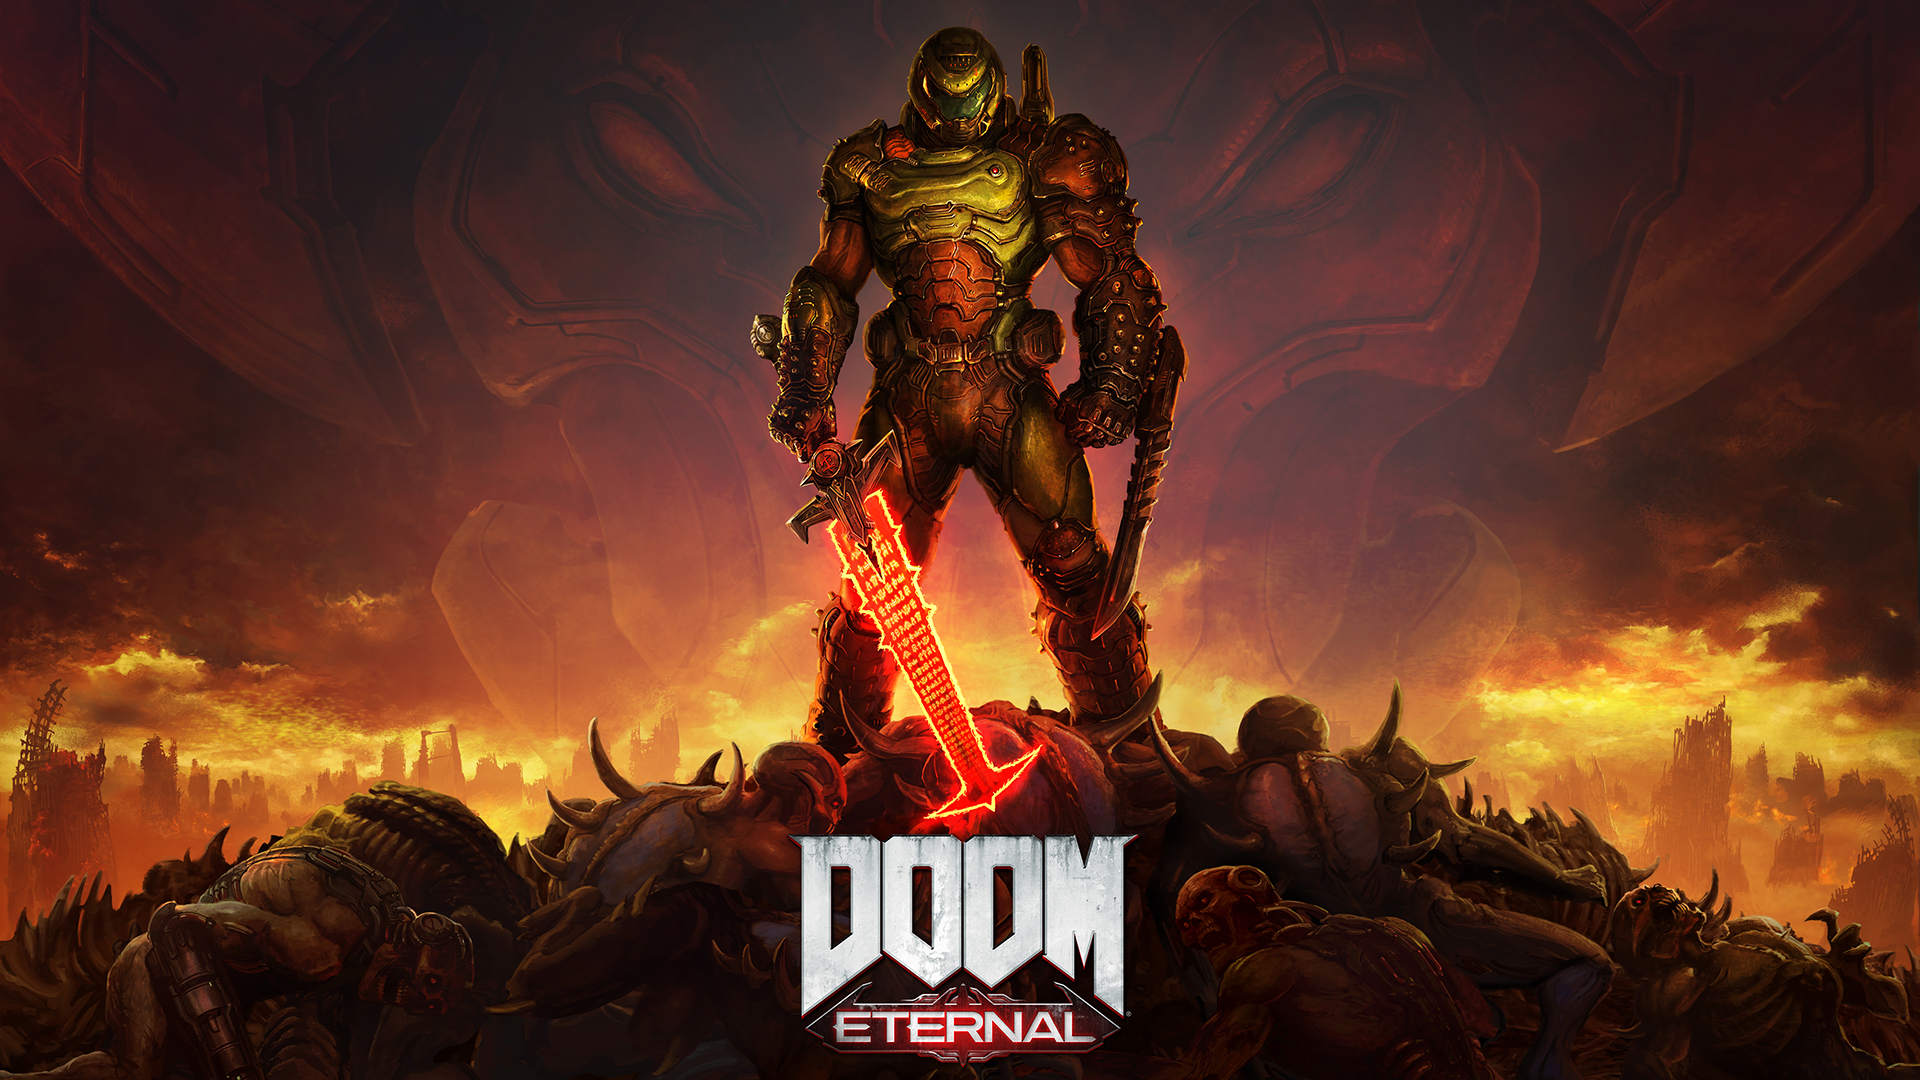 Home | Slayers Club | DOOM Eternal | Bethesda.net